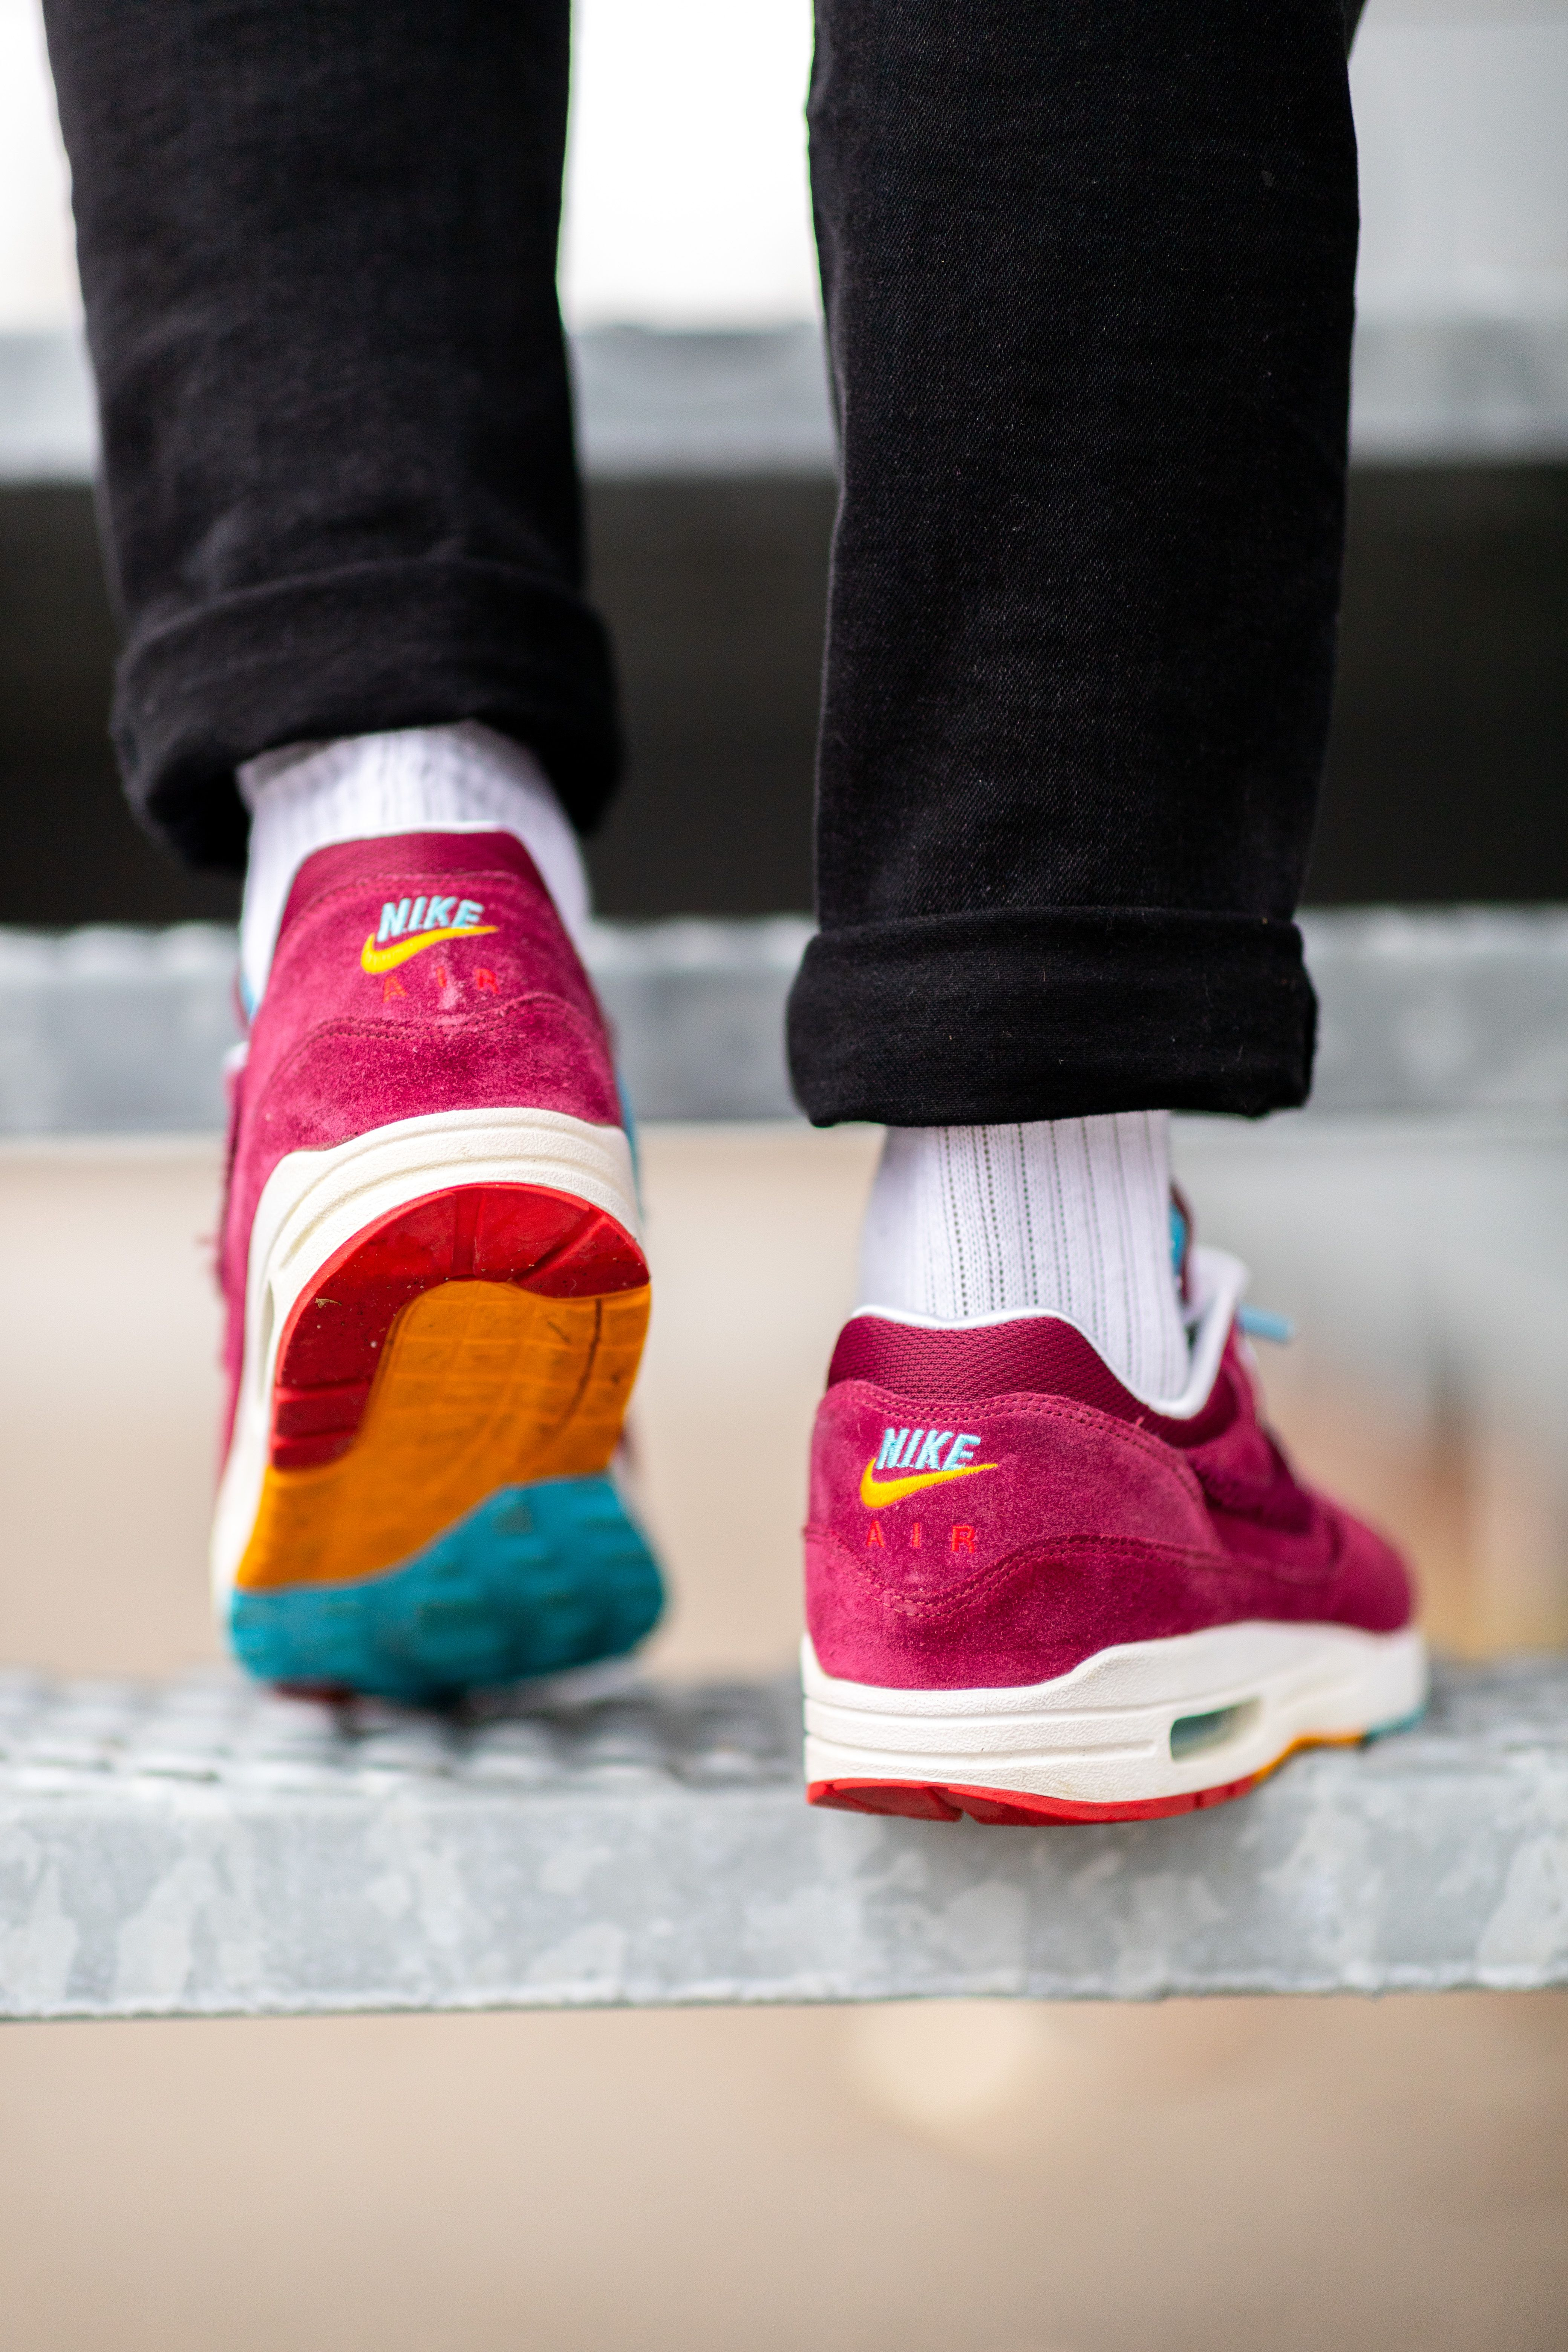 Nike Air Max 1 Patta x Parra Burgundy Cherrywood in 2019